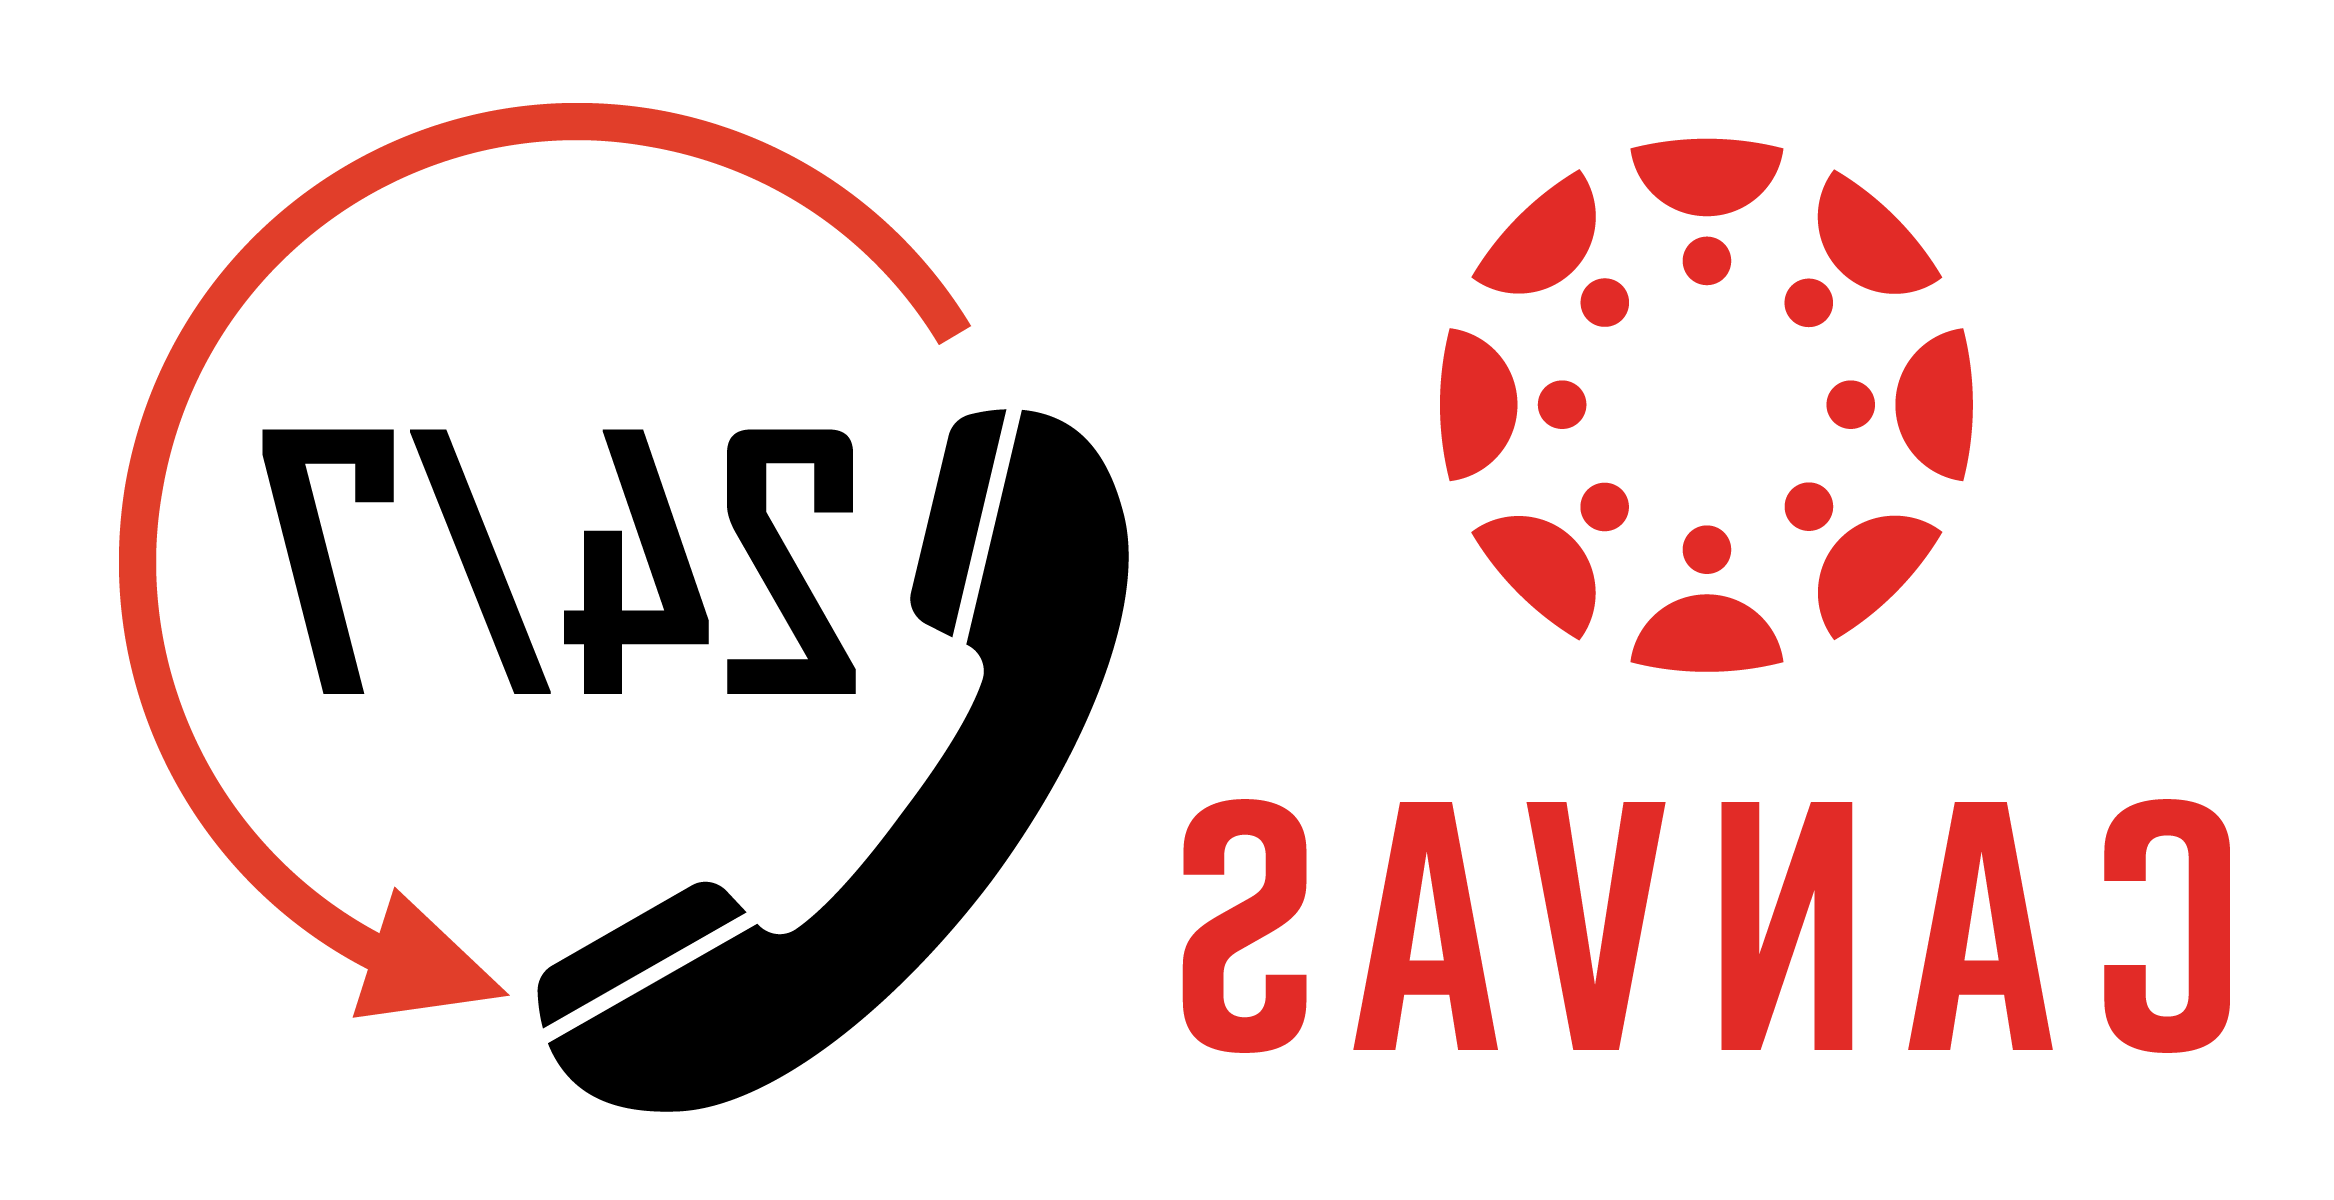 帆布 logo and 24/7 with phone